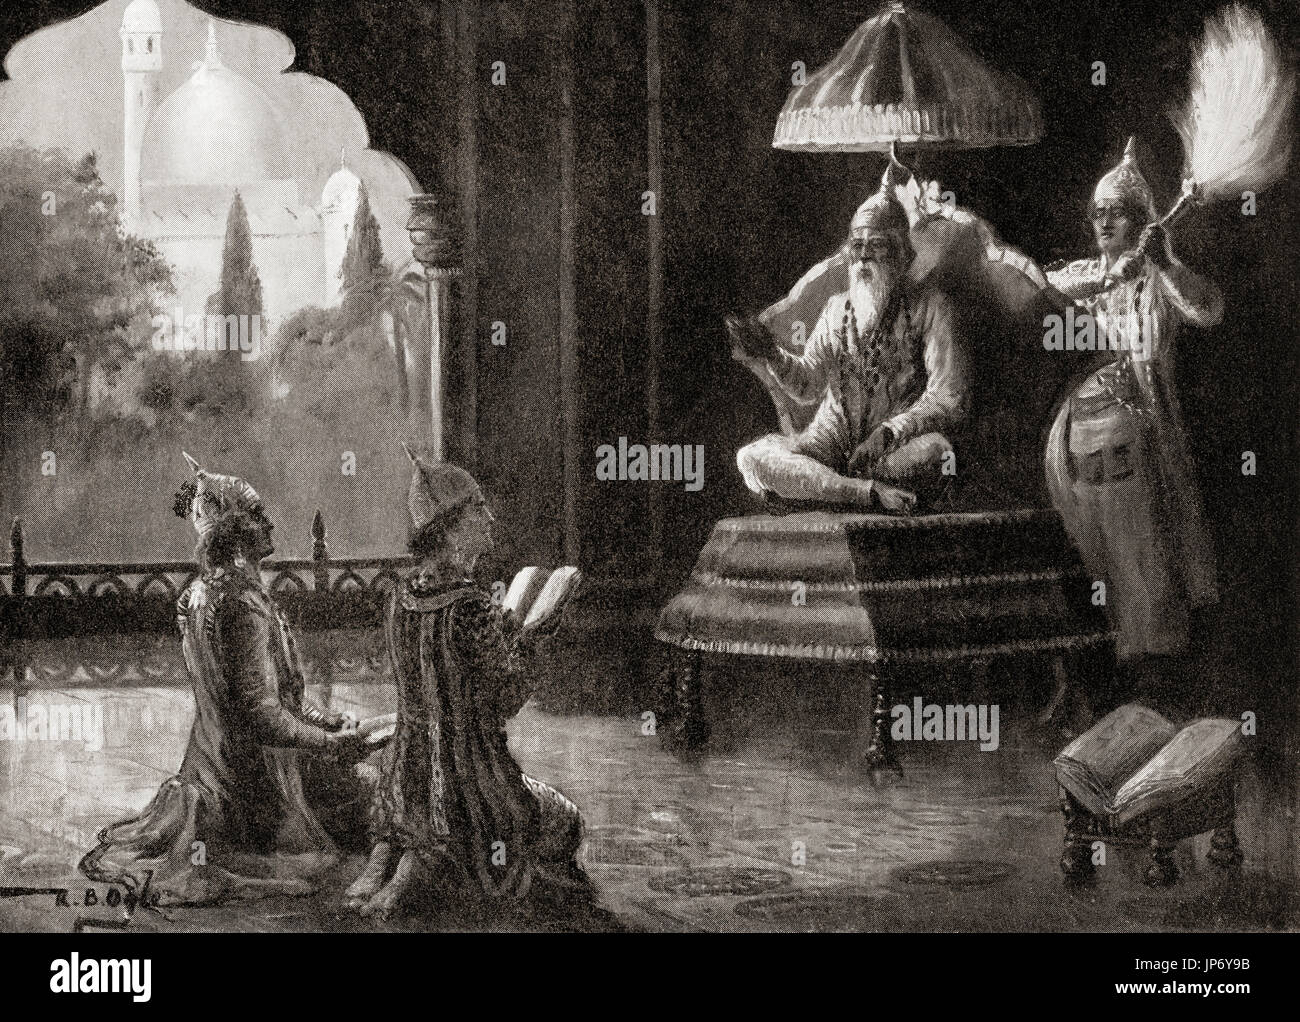 The medieval reformer Kabir and his sons, 1510.  Kabir, 15th-century Indian mystic poet and saint.  From Hutchinson's History of the Nations, published 1915. - Stock Image